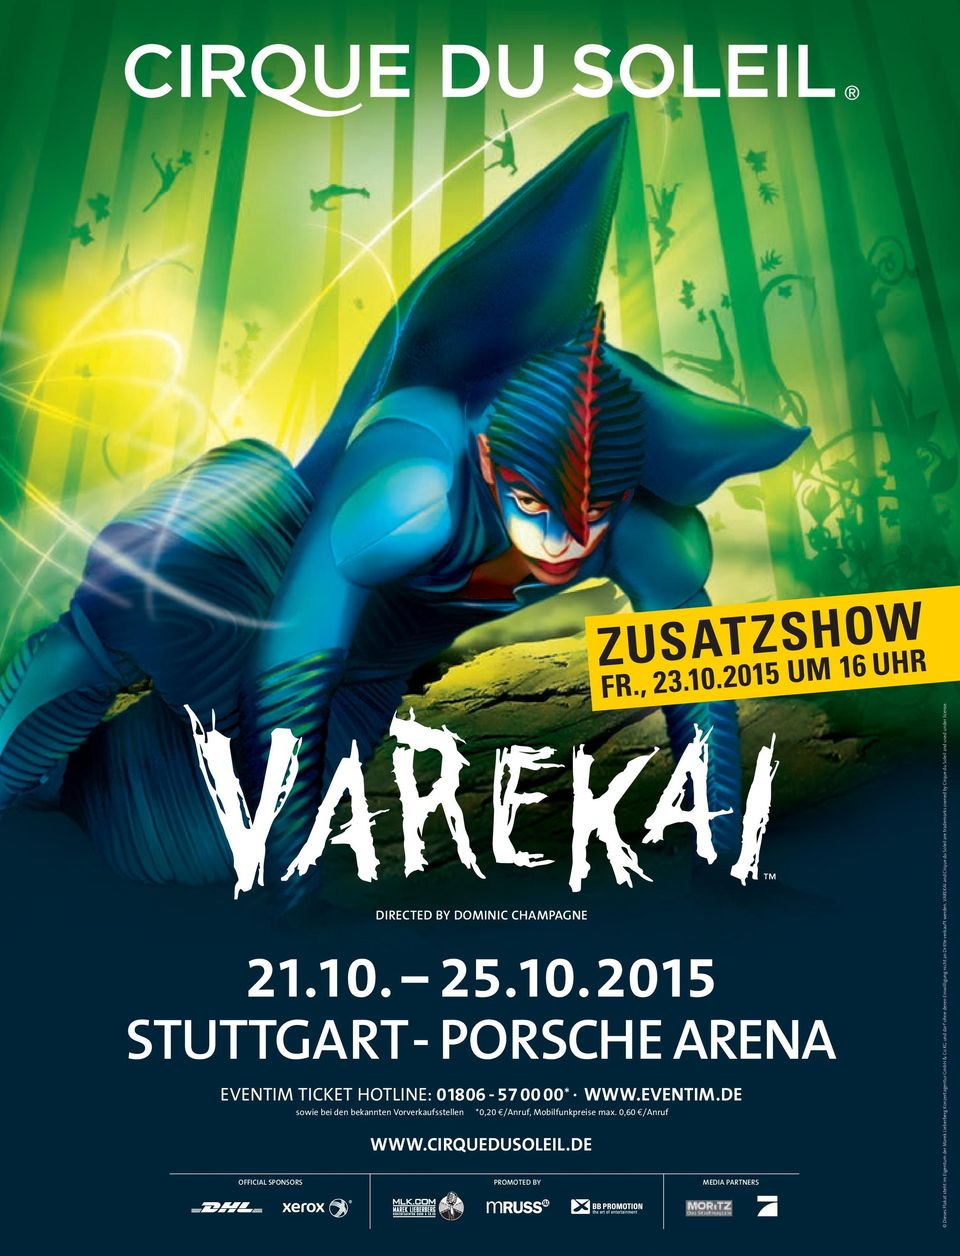 0,60 o/anruf official SPonSorS DirecteD by Dominic champagne www.cirquedusoleil.de PromoteD by ZusatZshow Fr., 23.10.